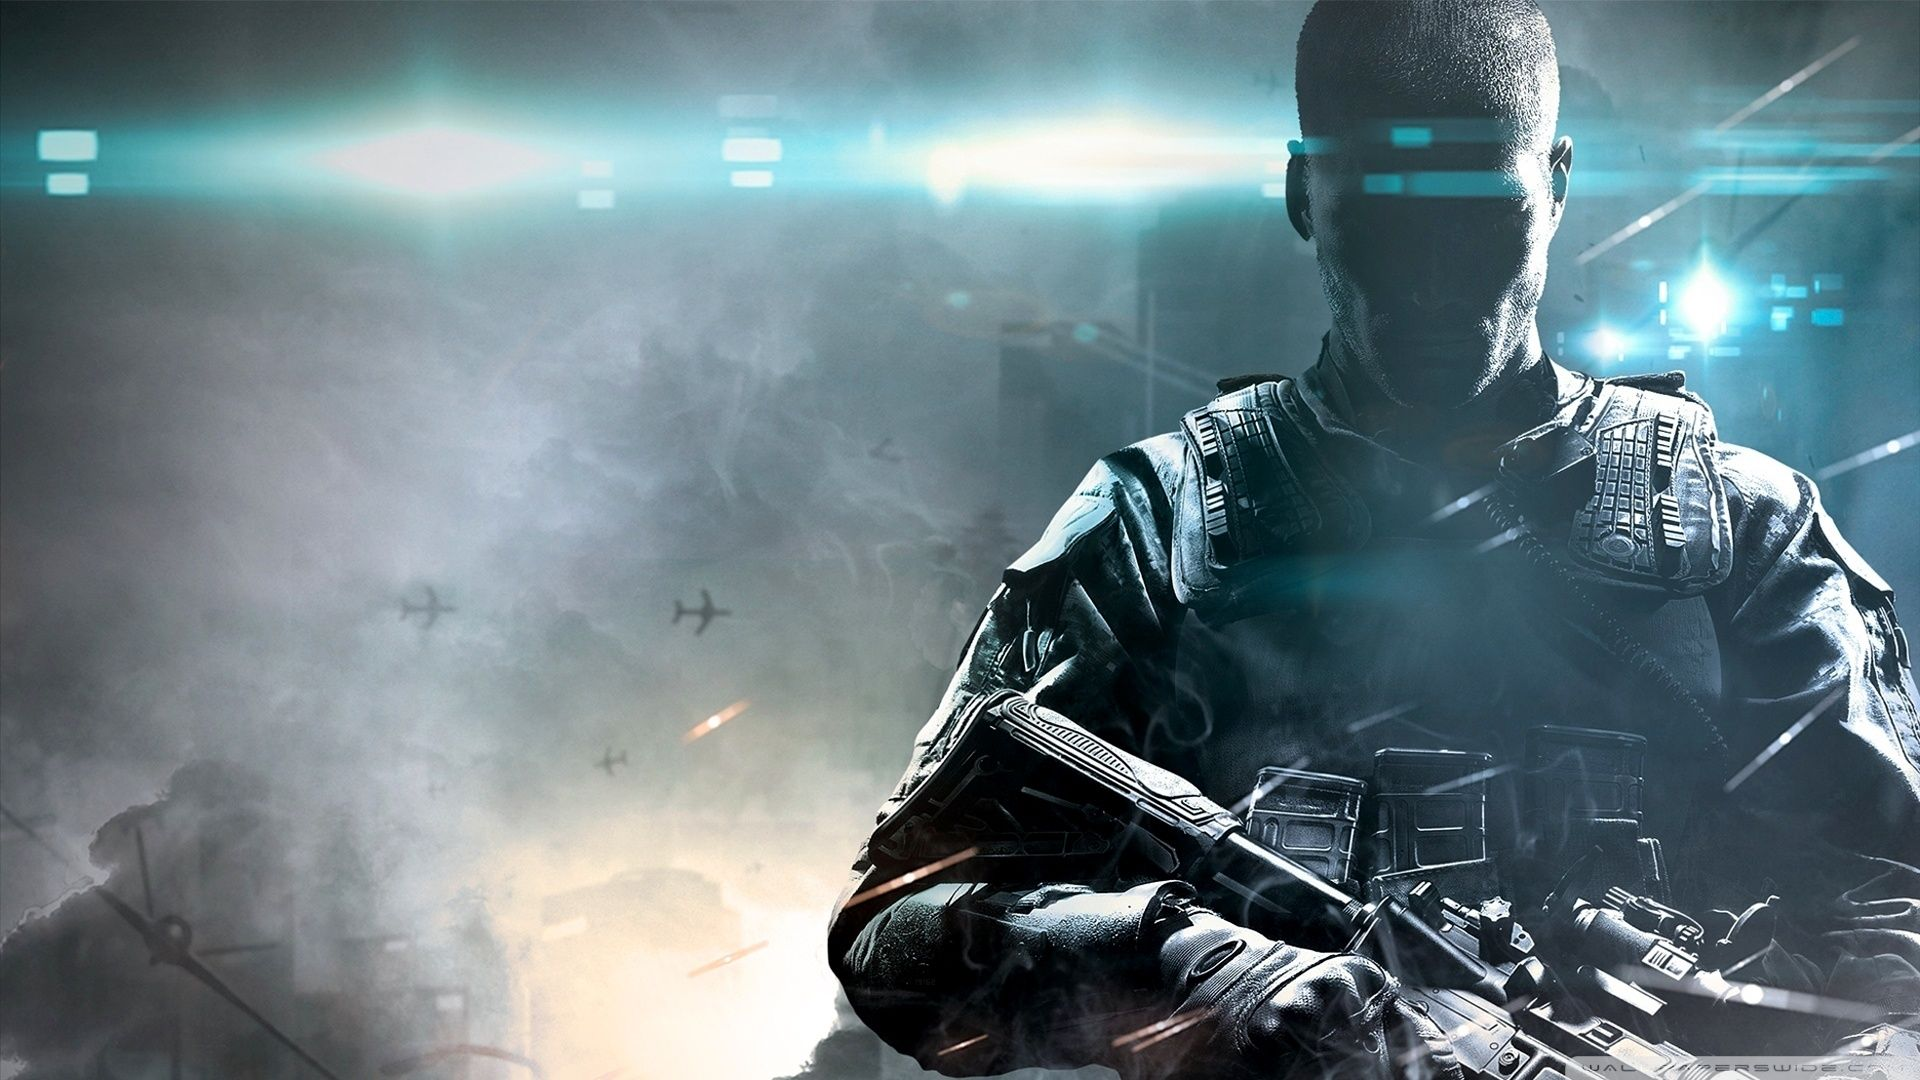 Call Of Duty Computer Wallpaper Best Zombie Best Wallpapers Android Call Of Duty Wallpaper